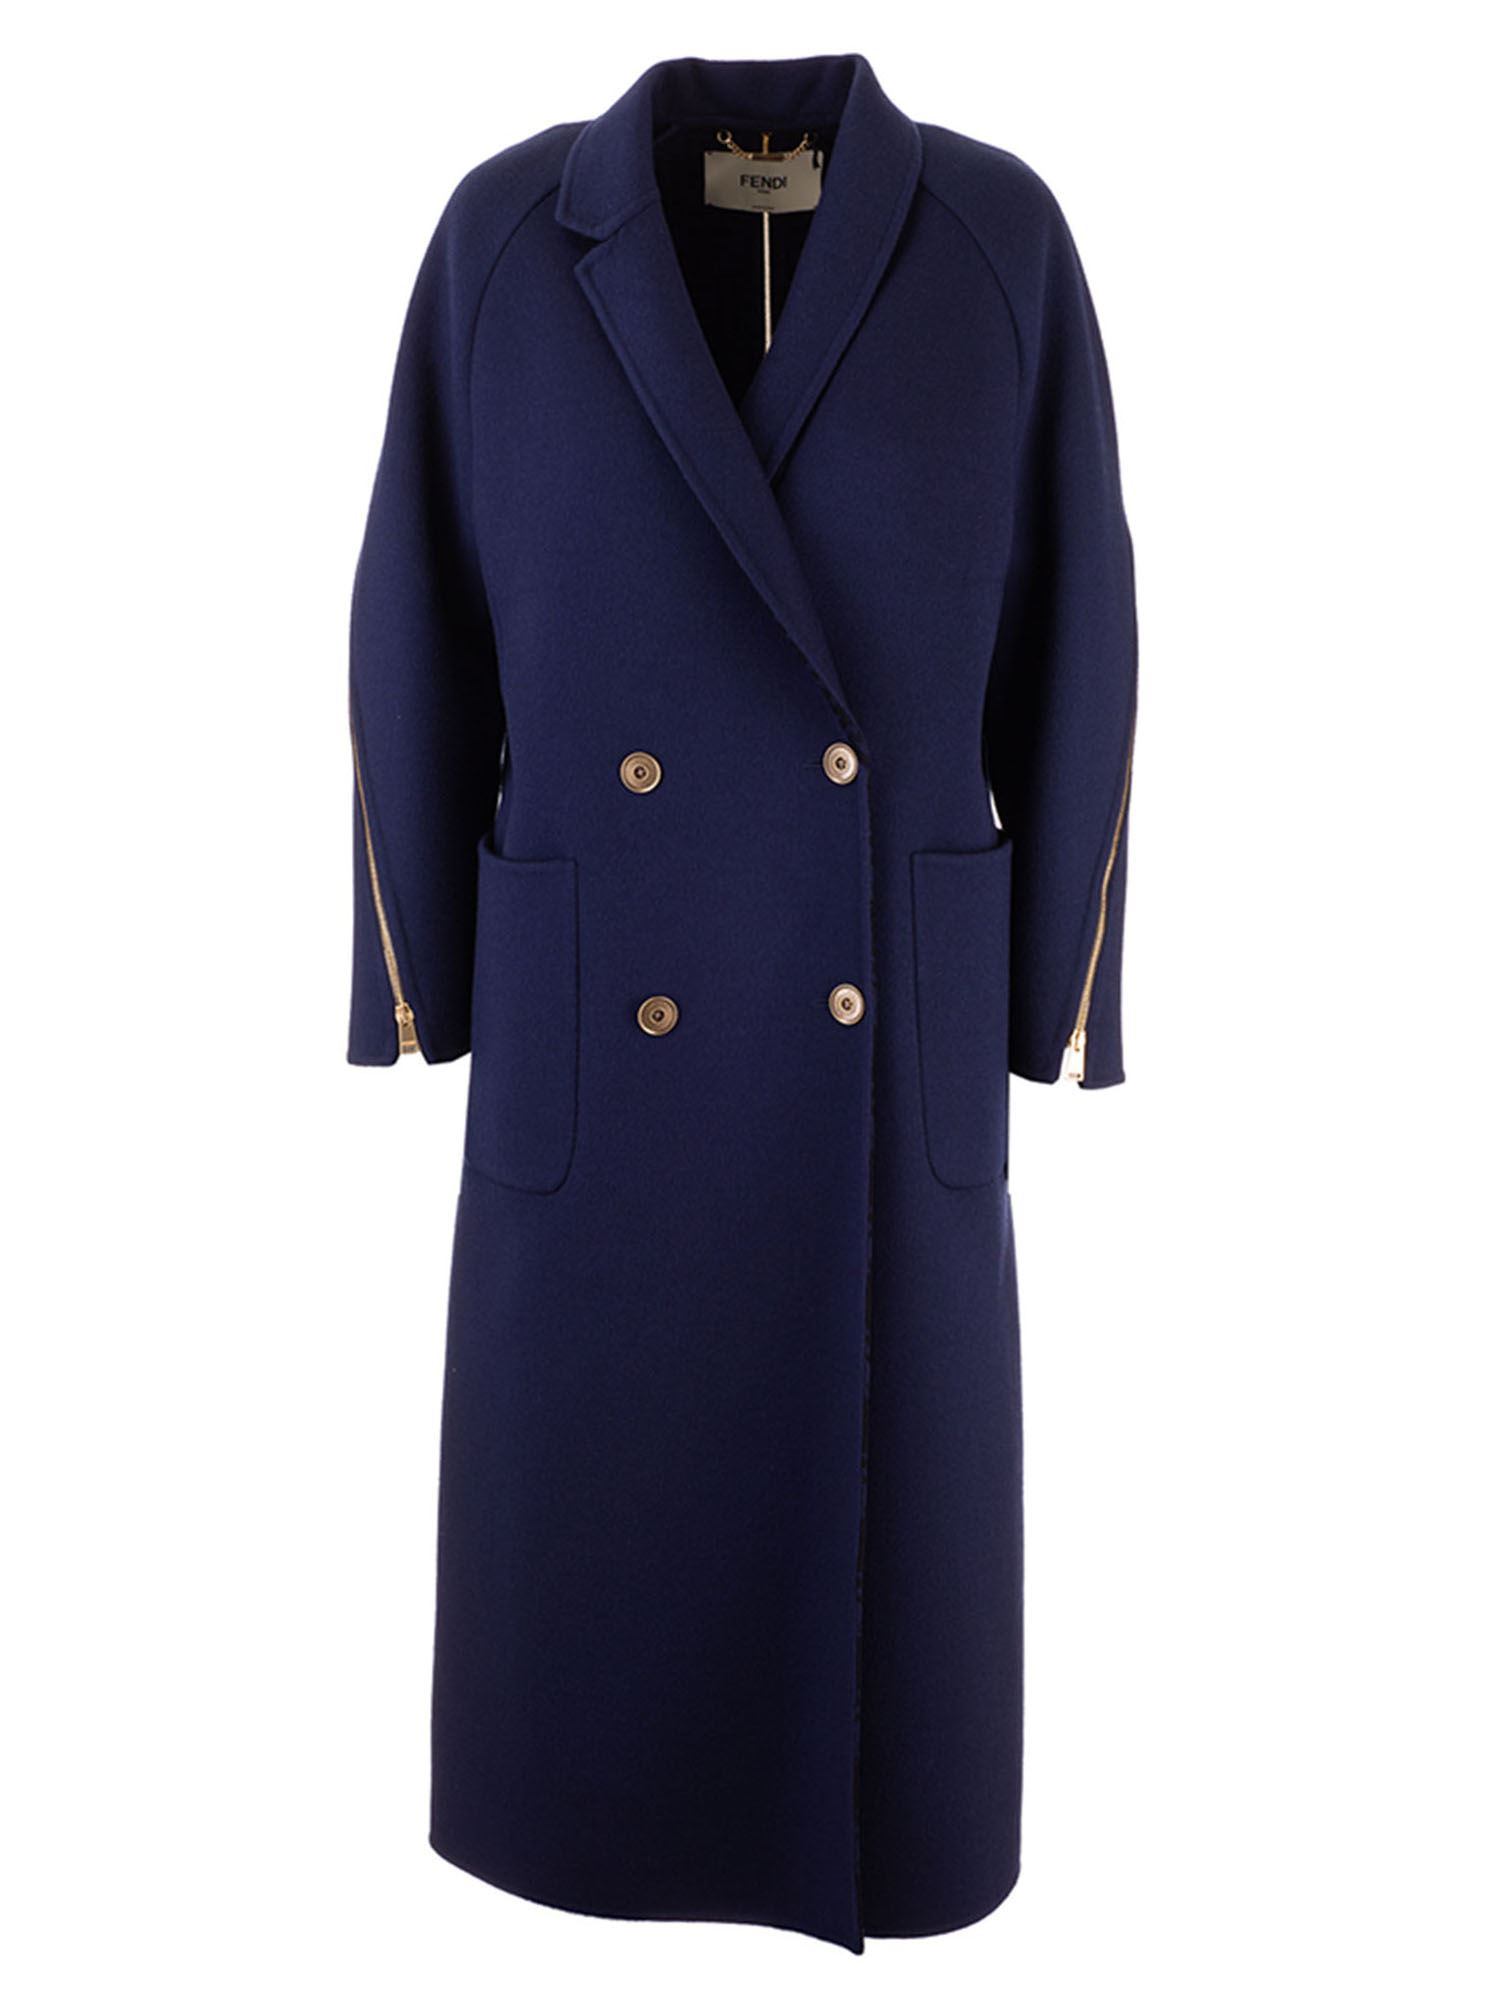 Fendi MAXI ZIP COAT IN BLUE